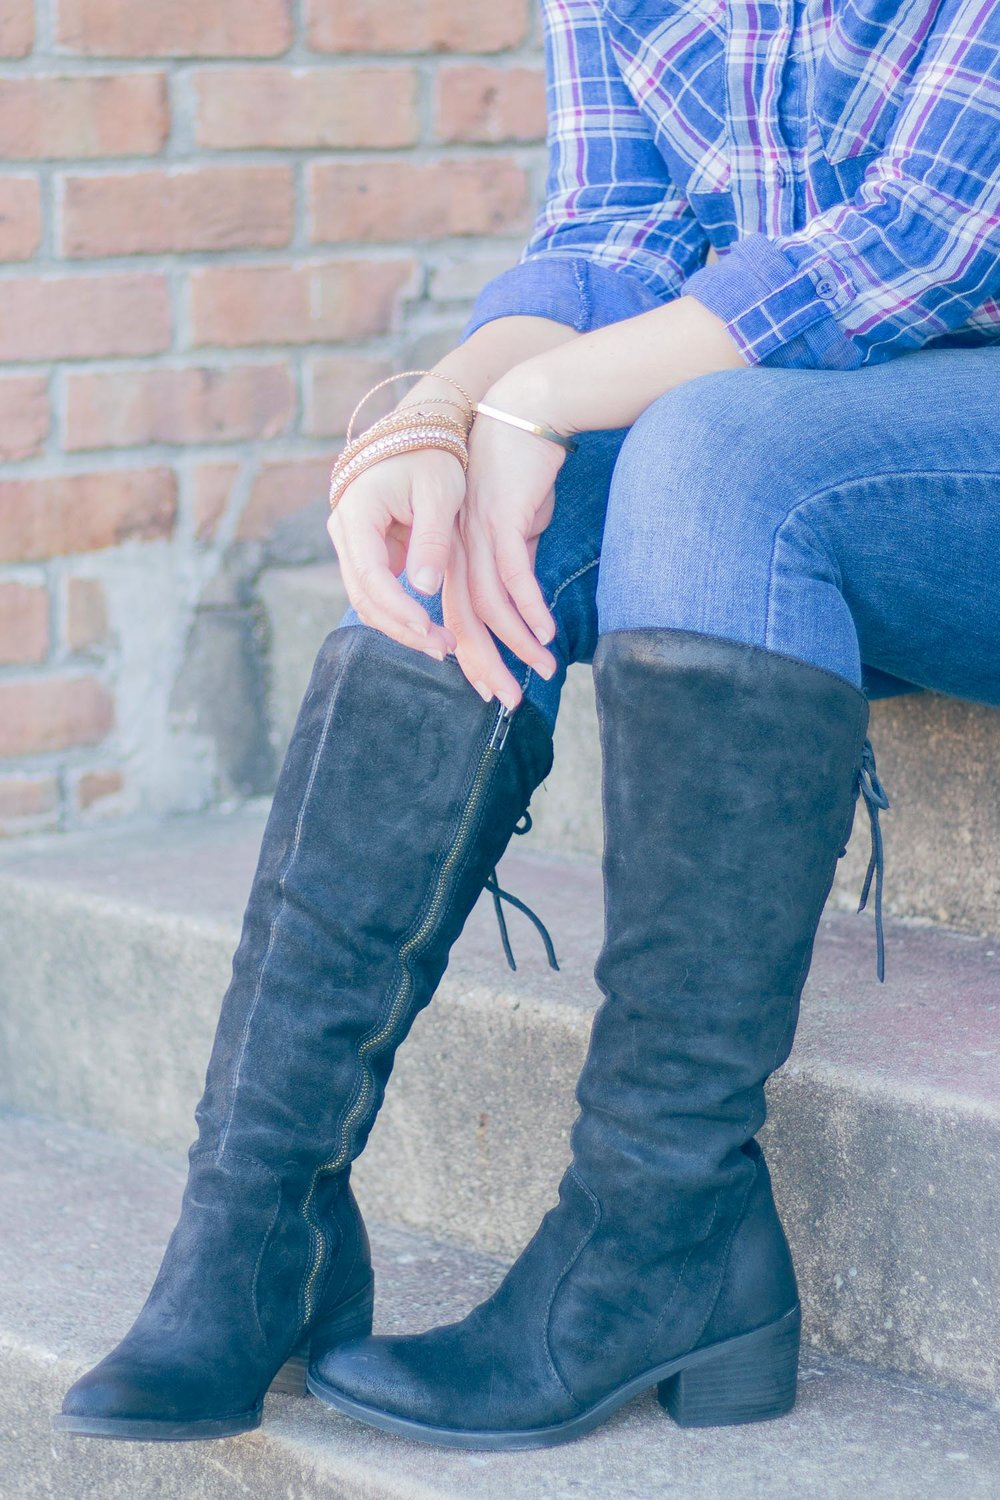 Black-Boots-Outfit.jpg